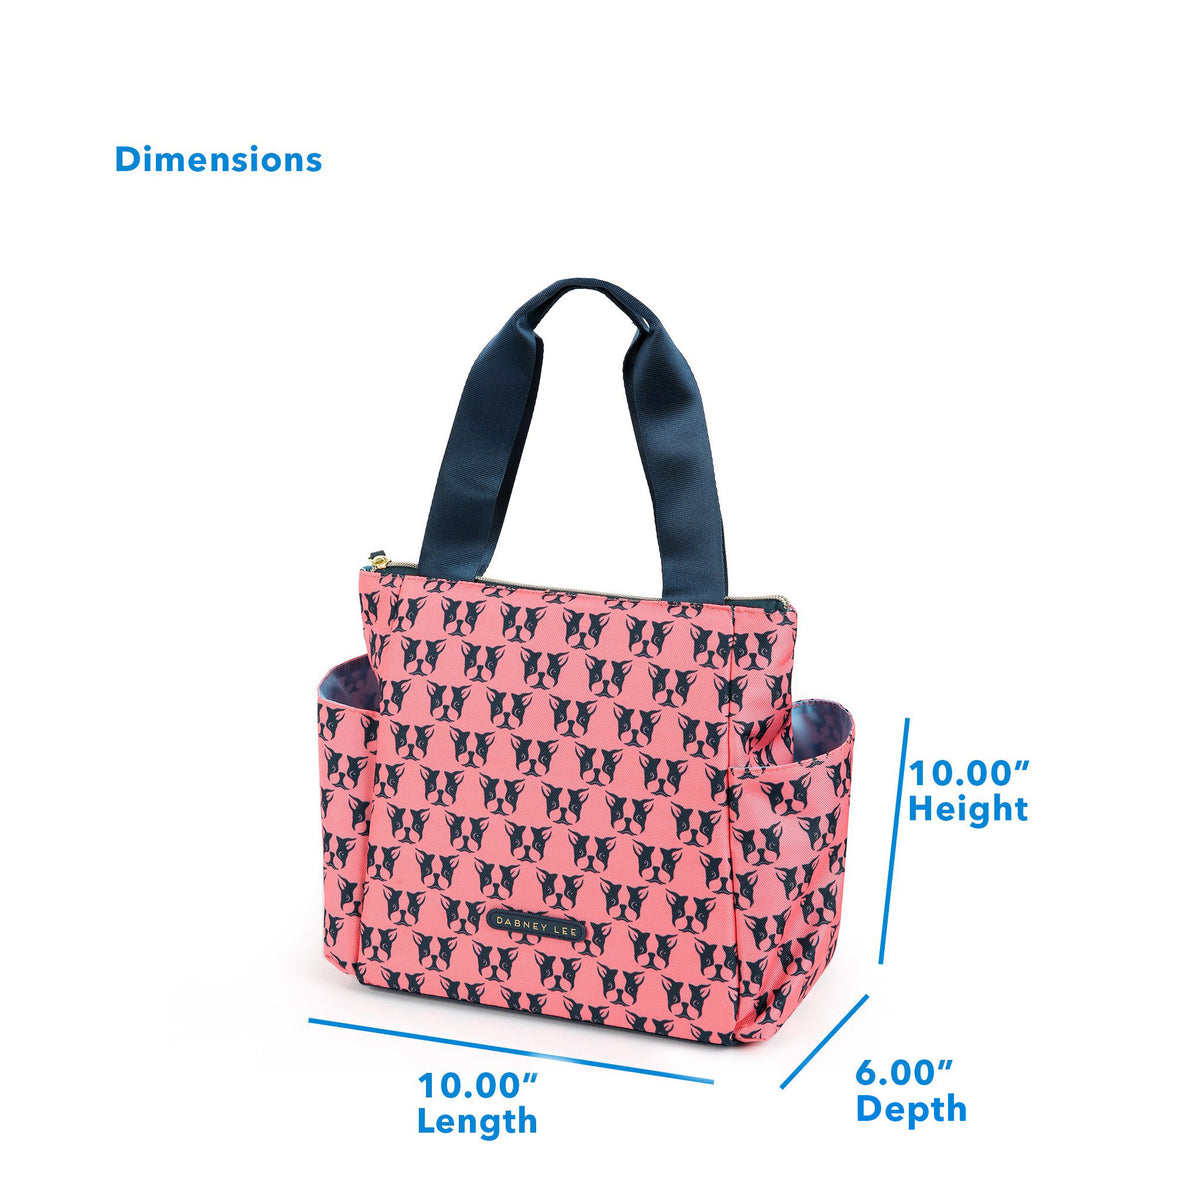 "Arctic Zone® Dabney Lee Karina Tote - Polly Coral - Dimensions: (L x D x H) 10.00"" x 6.00"" x 10.00"""